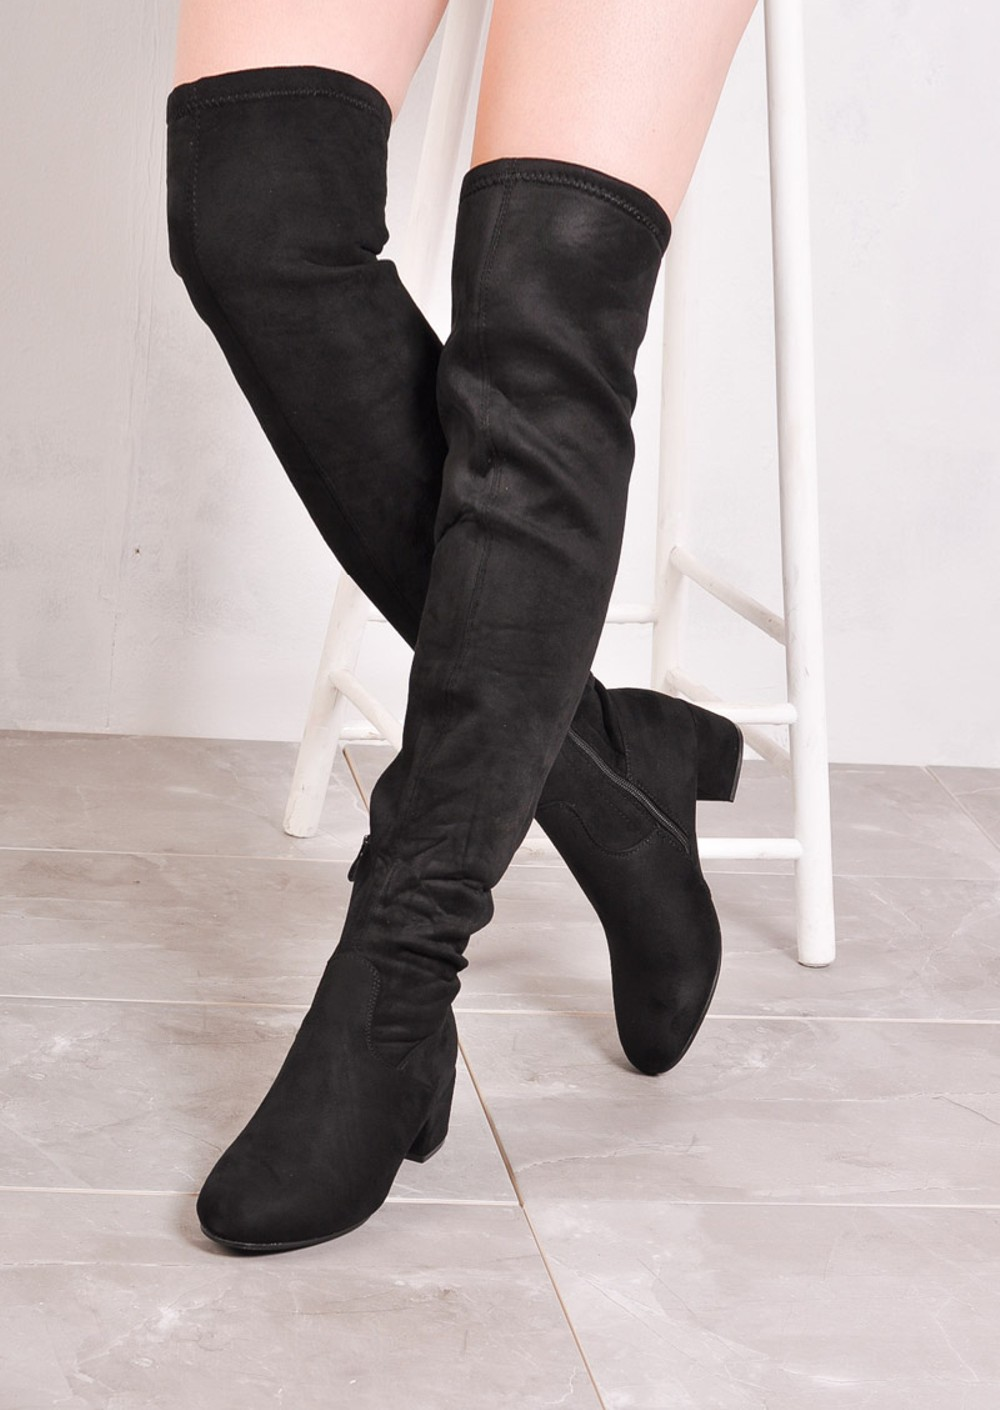 Women's Boots: Free Shipping on orders over $45 at Find the latest styles of Shoes from universities2017.ml Your Online Women's Shoes Store! Get 5% in rewards with Club O!